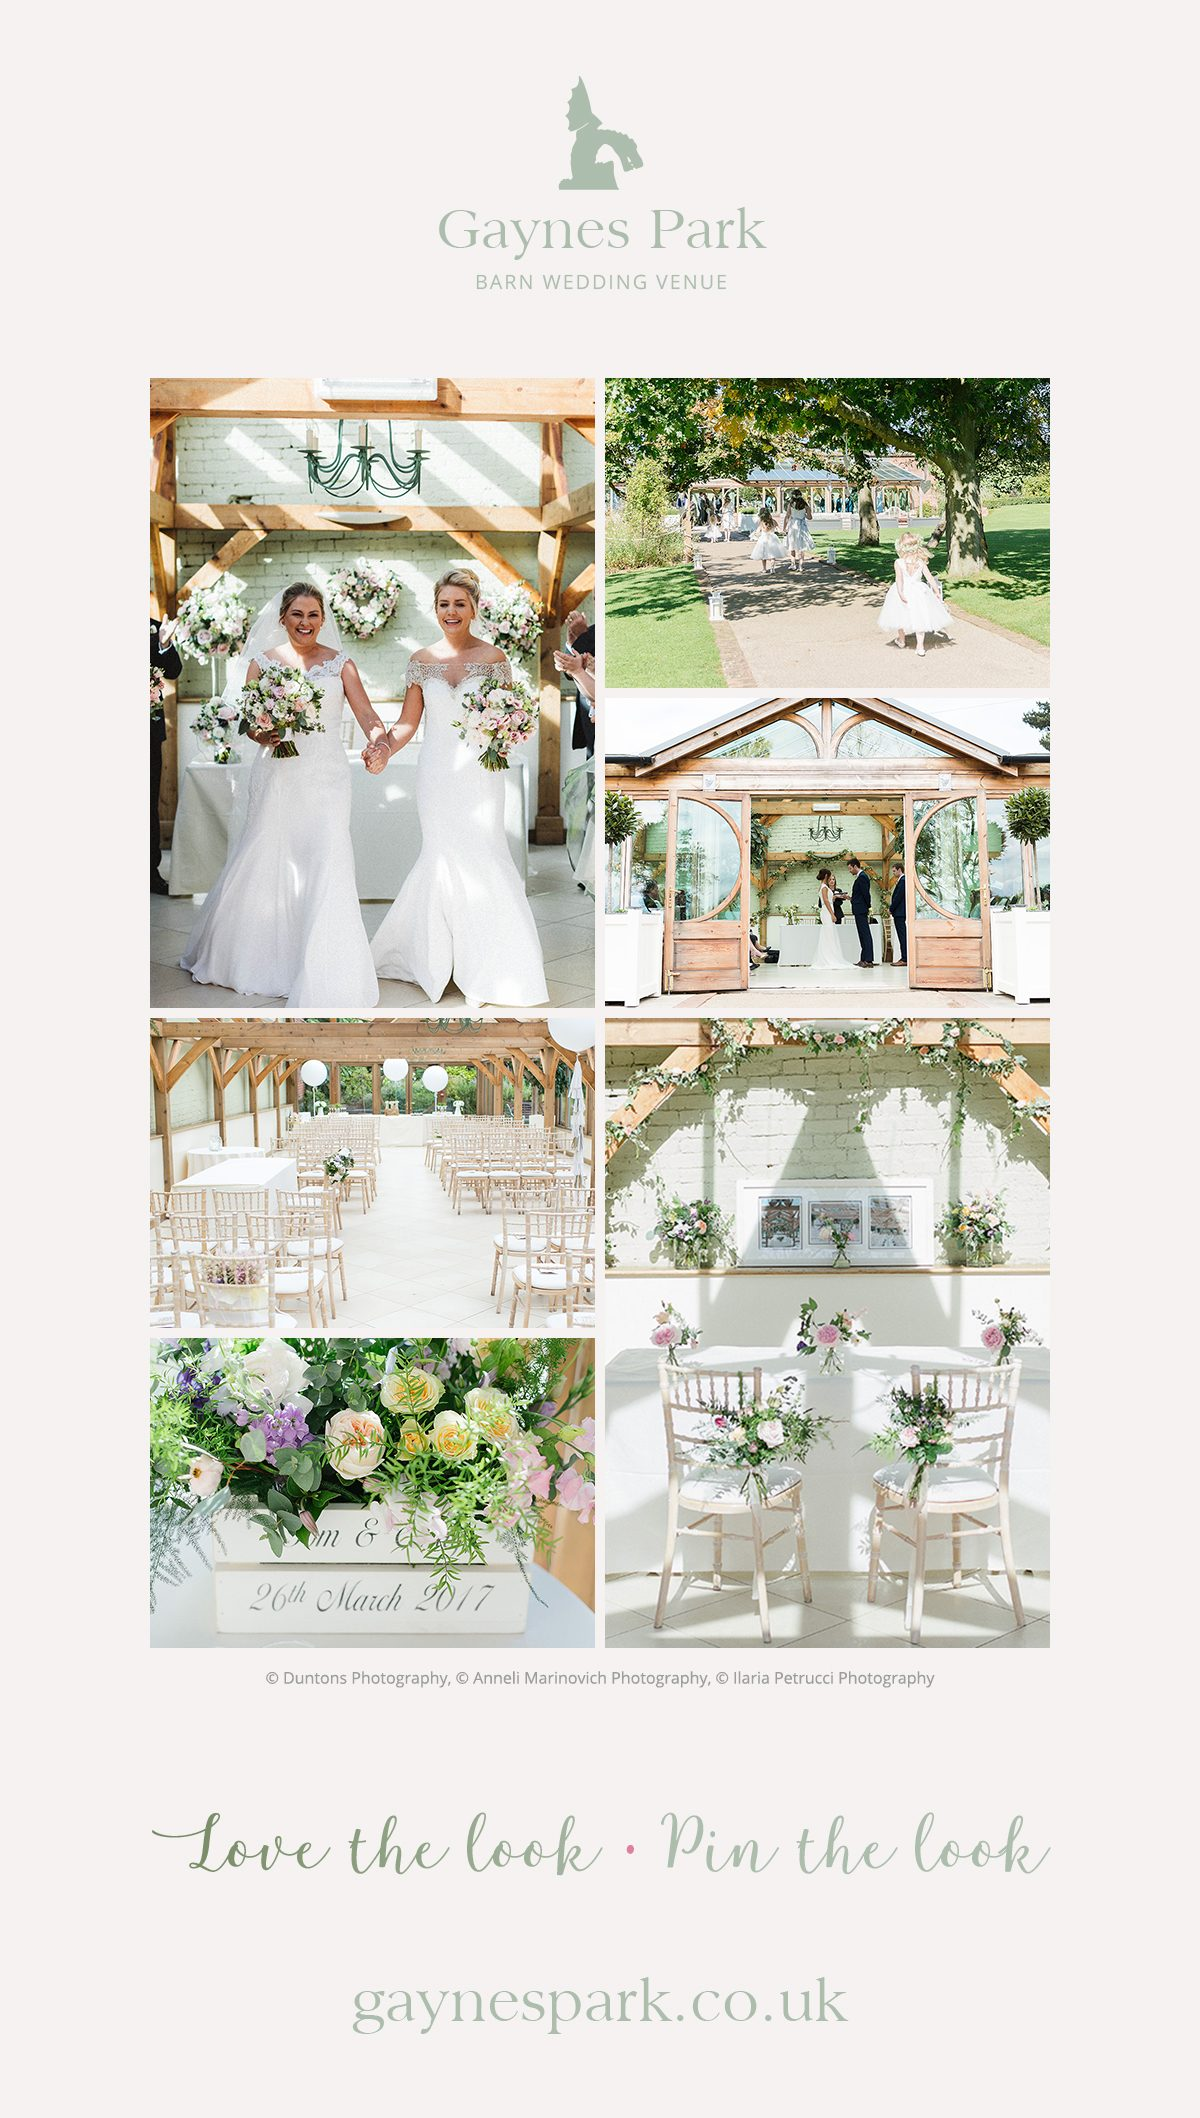 Setting up the Ceremony – All about the Orangery at Gaynes Park